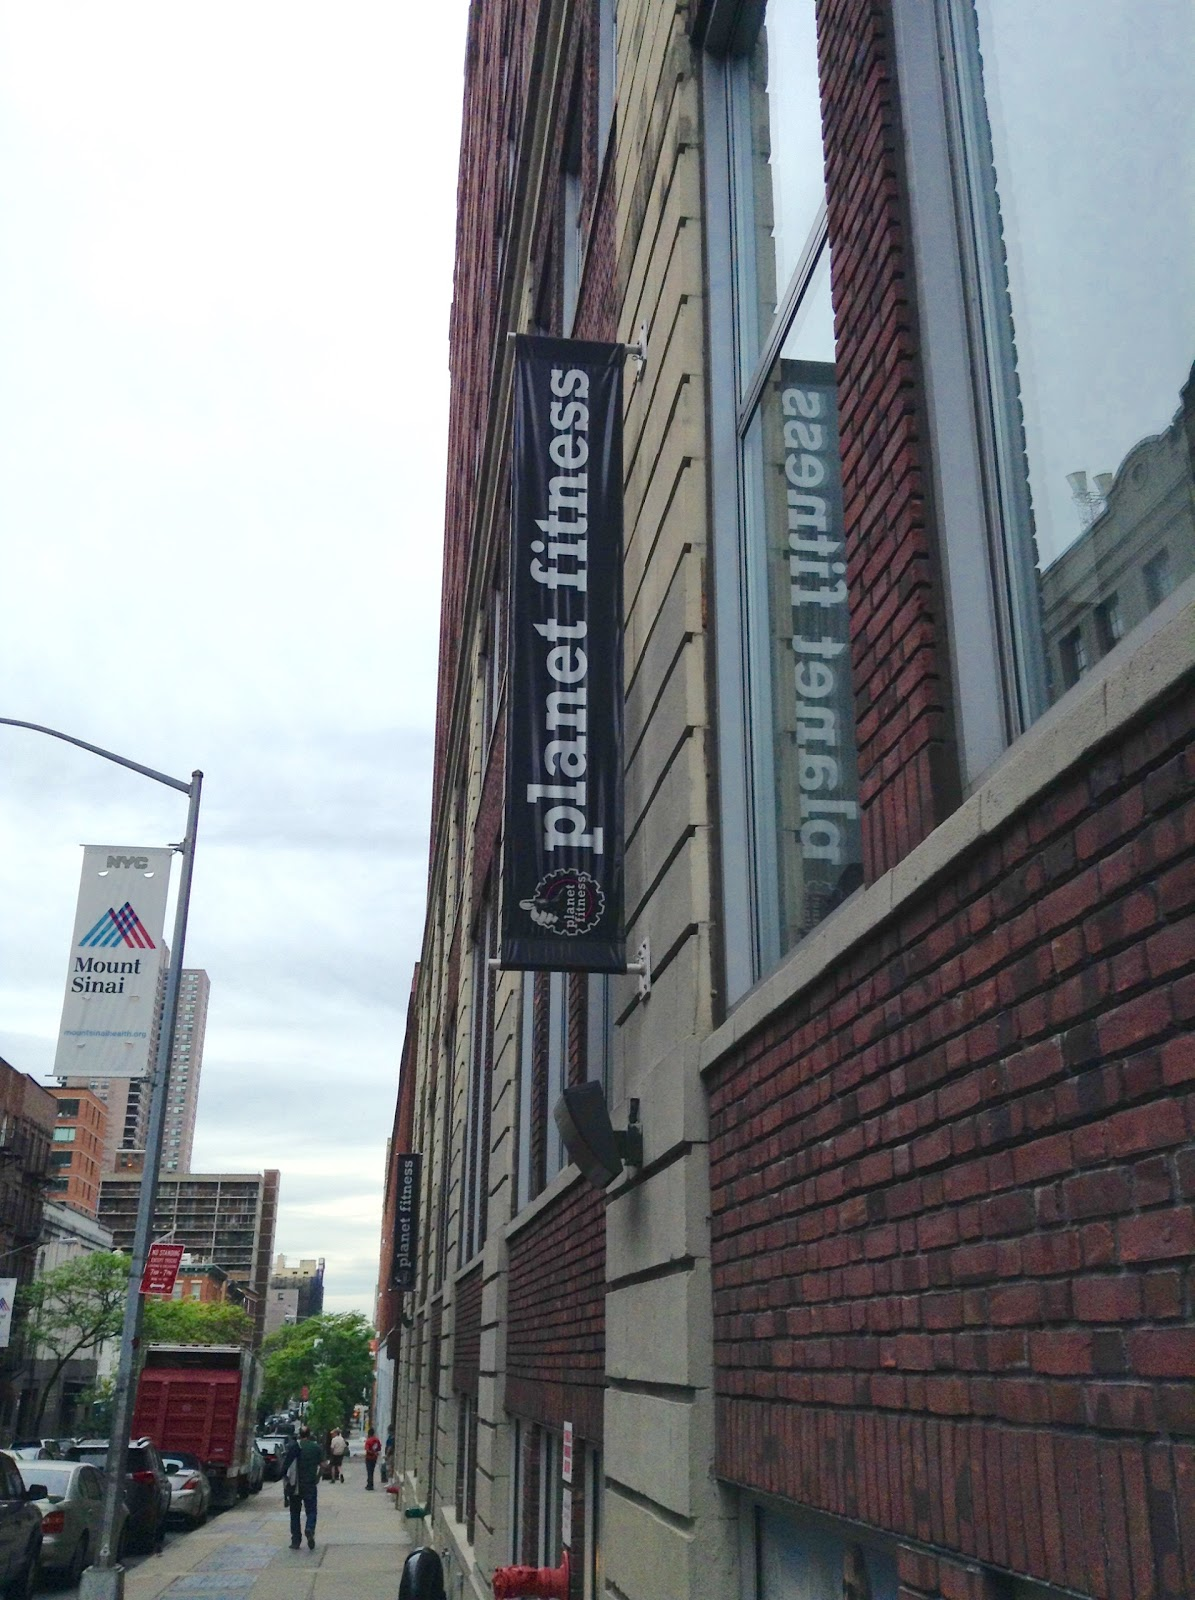 Planet Fitness In Manhattan : planet, fitness, manhattan, Planet, Fitness, Manhattan, (Midtown, West),, Explore, Before